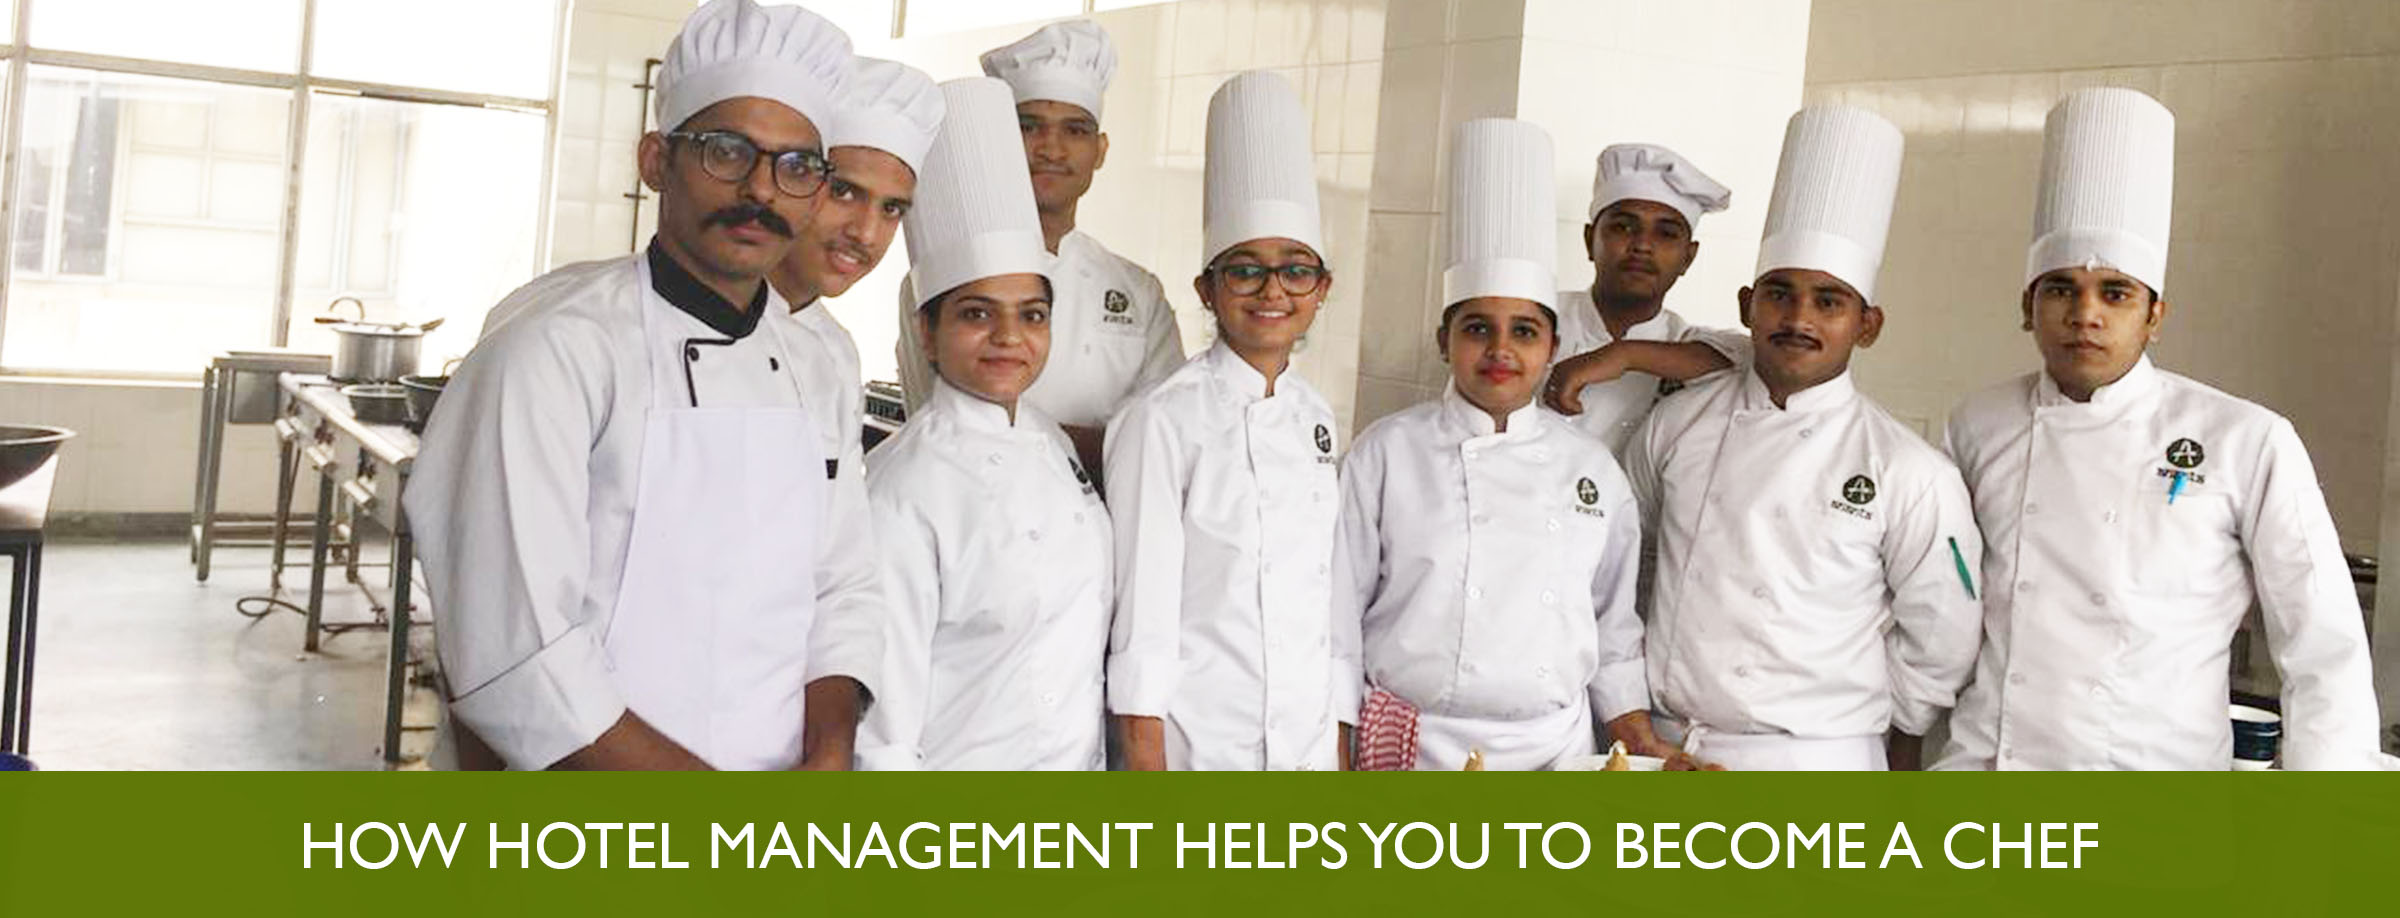 HOW HOTEL MANAGEMENT HELPS YOU TO BECOME A CHEF